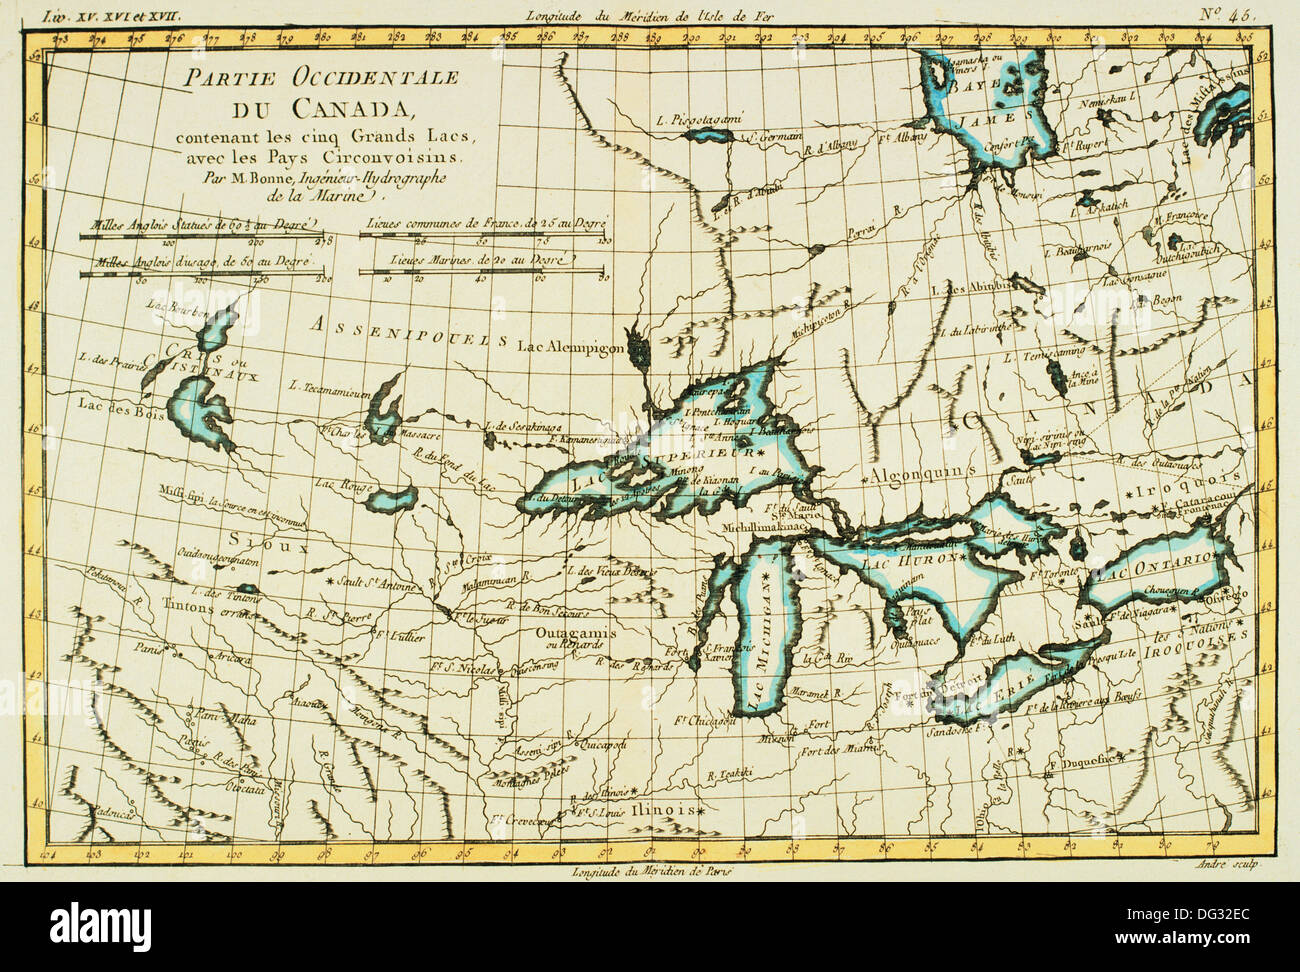 Canada Great Lakes 18th Century Map Stock Photo